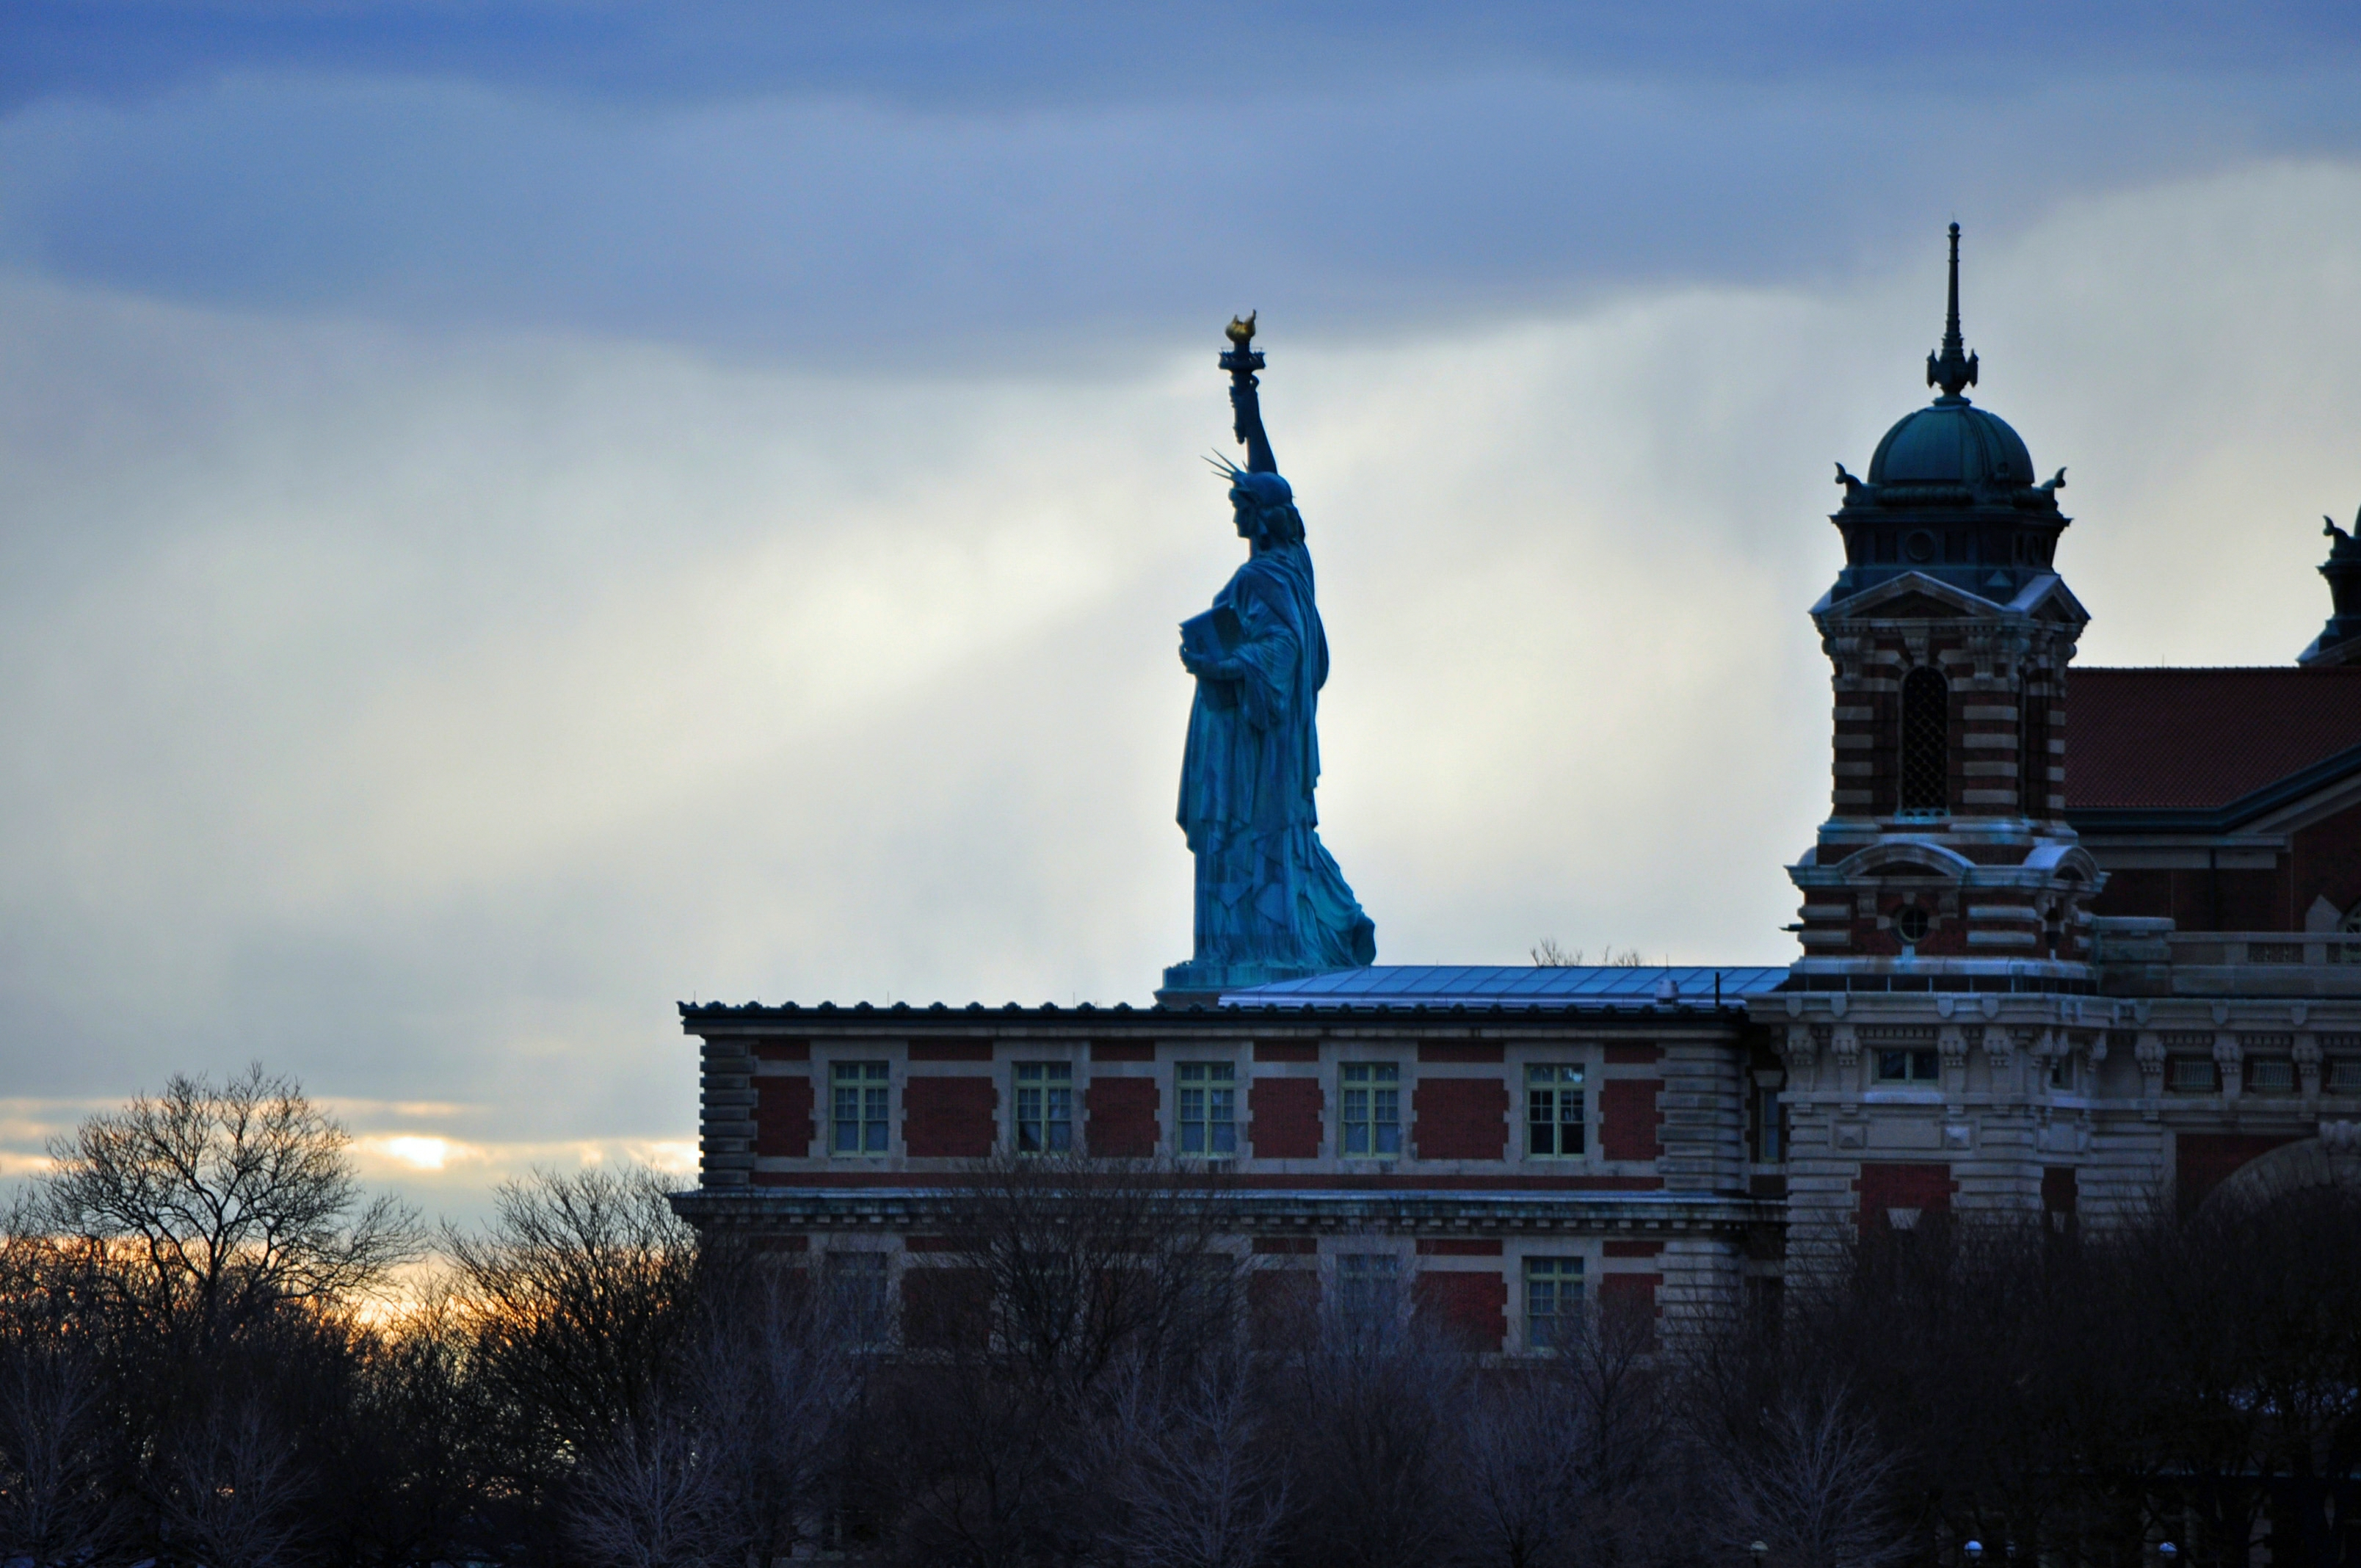 A photograph of Ellis Island with the Statue of Liberty in the background